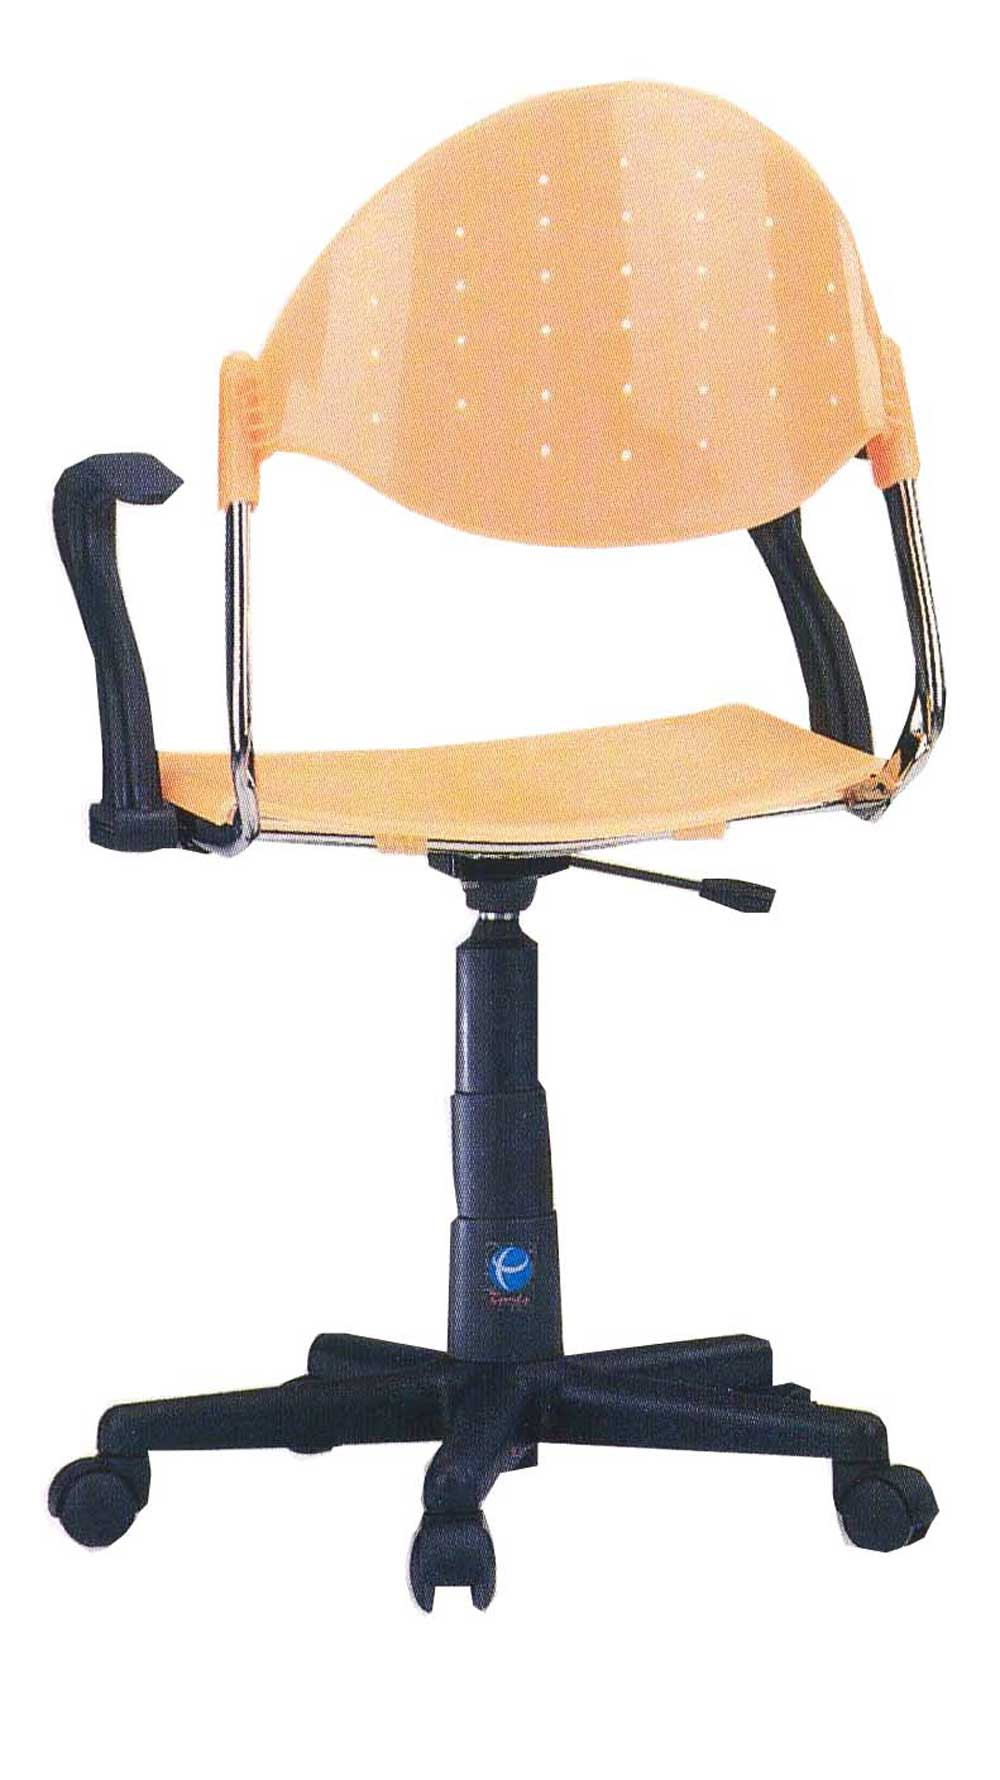 Most Ergonomic Adjustable Office Chairs